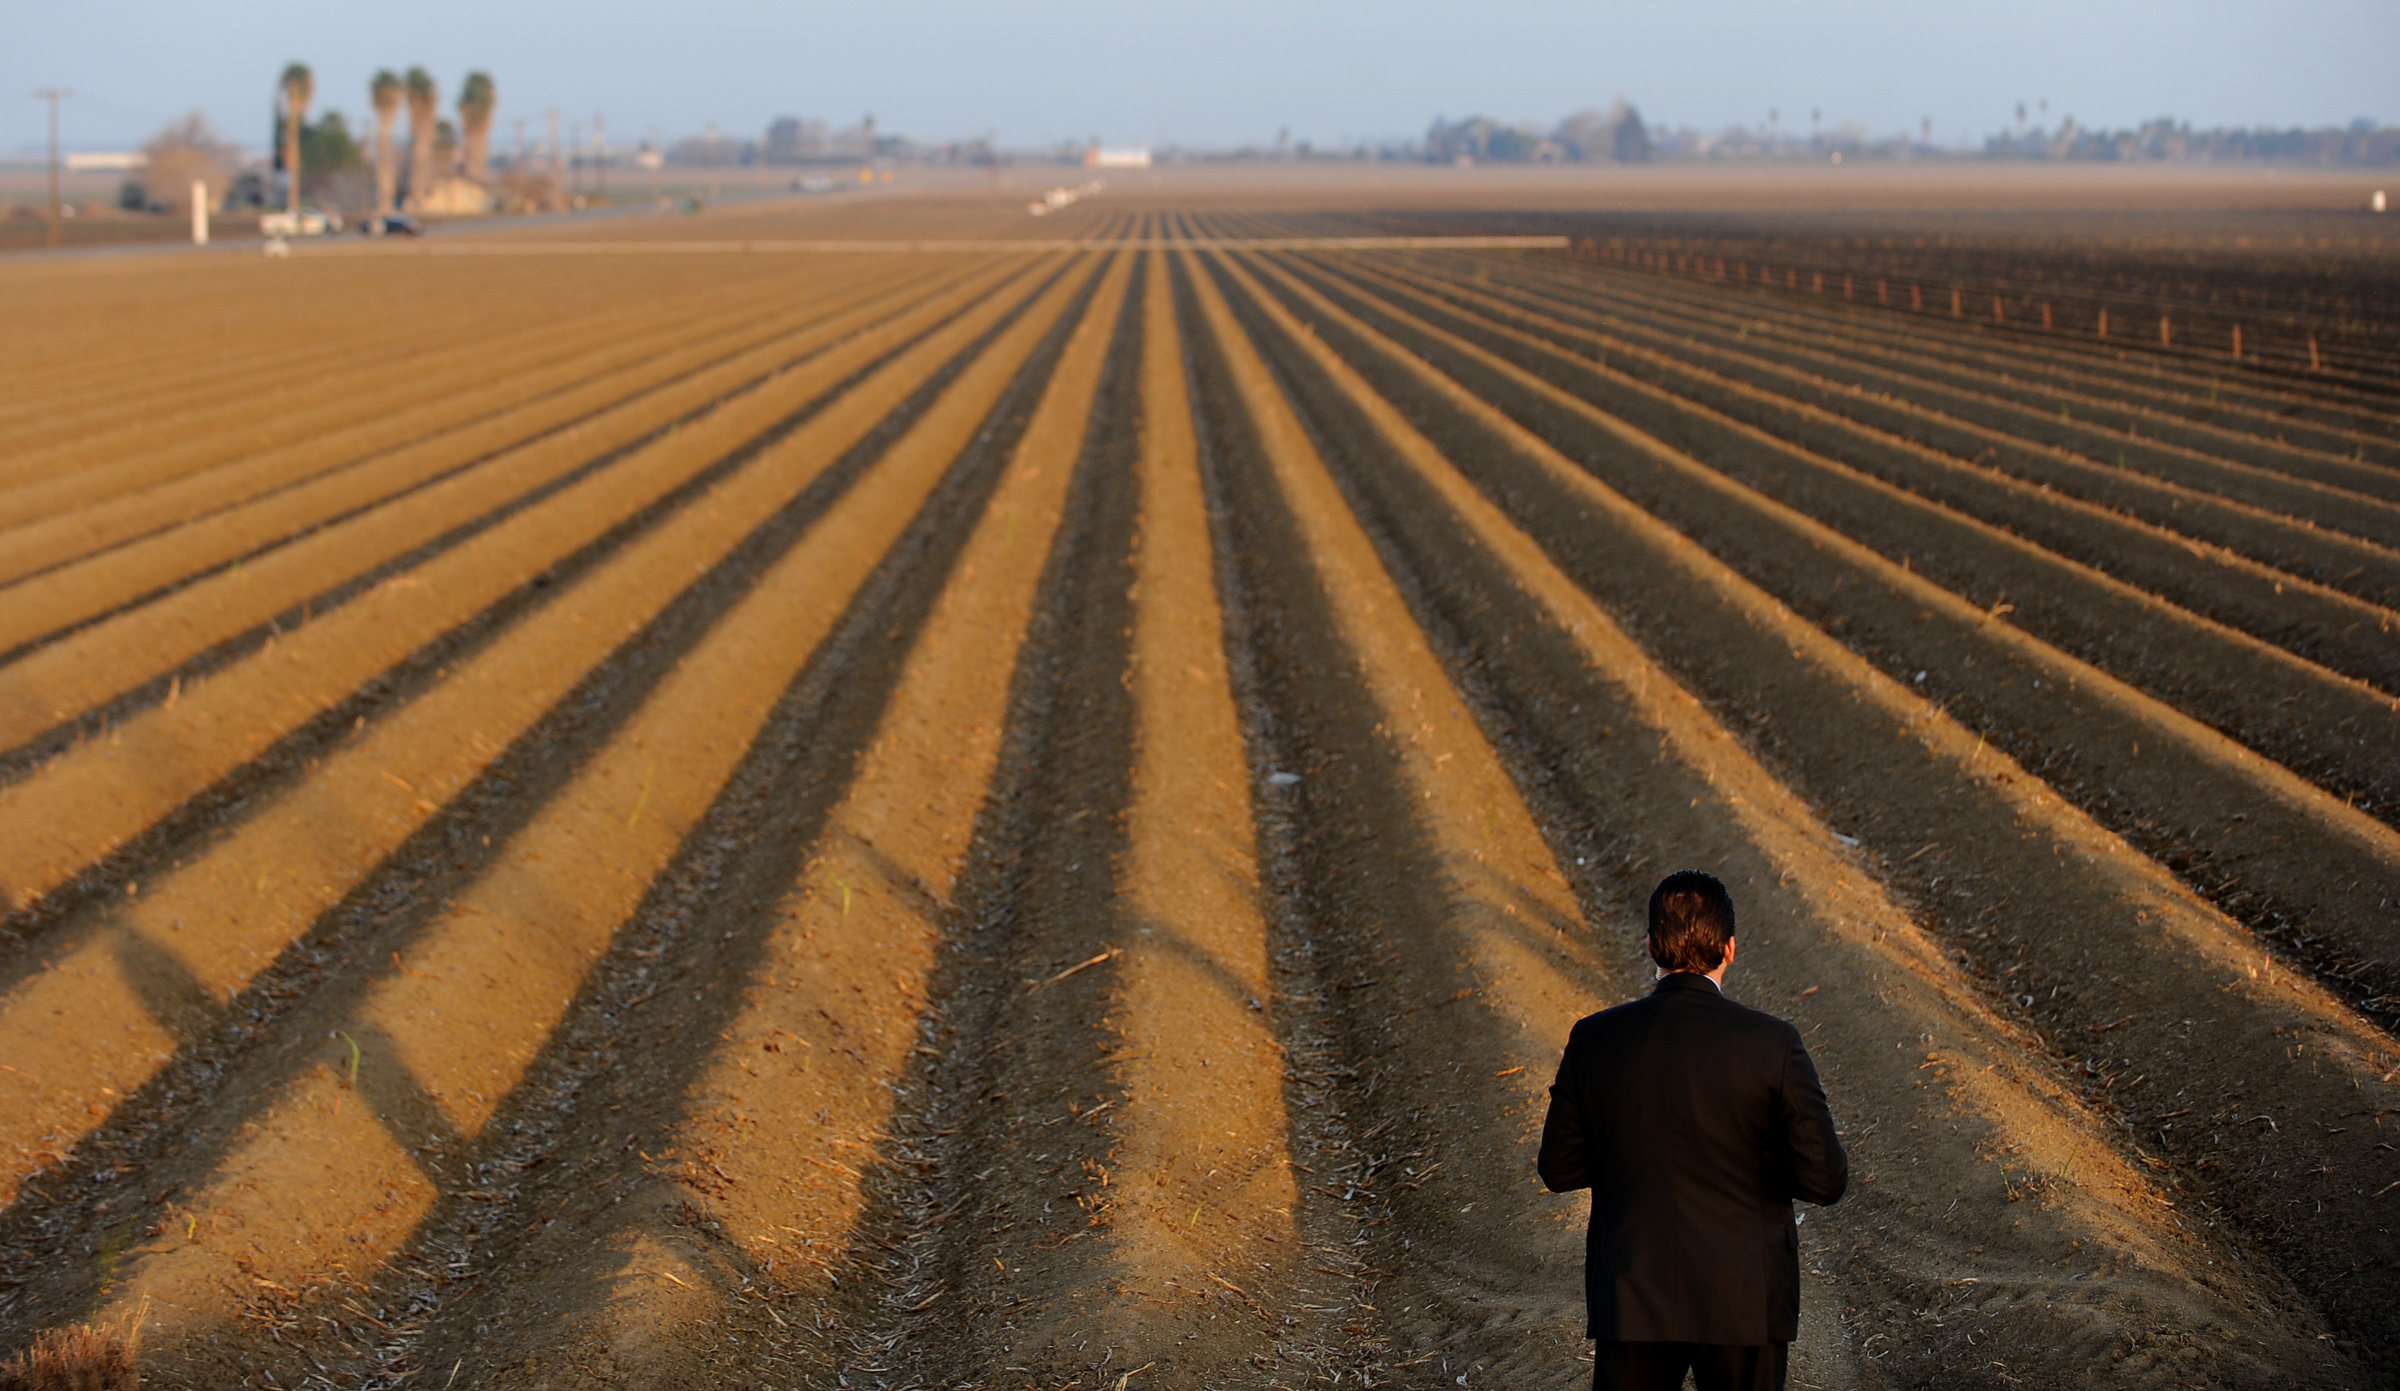 A secret service agent looks over a fallowed field near the Fresno County town of Firebaugh, during a February 2014 visit by President Obama to announce emergency drought relief measures.